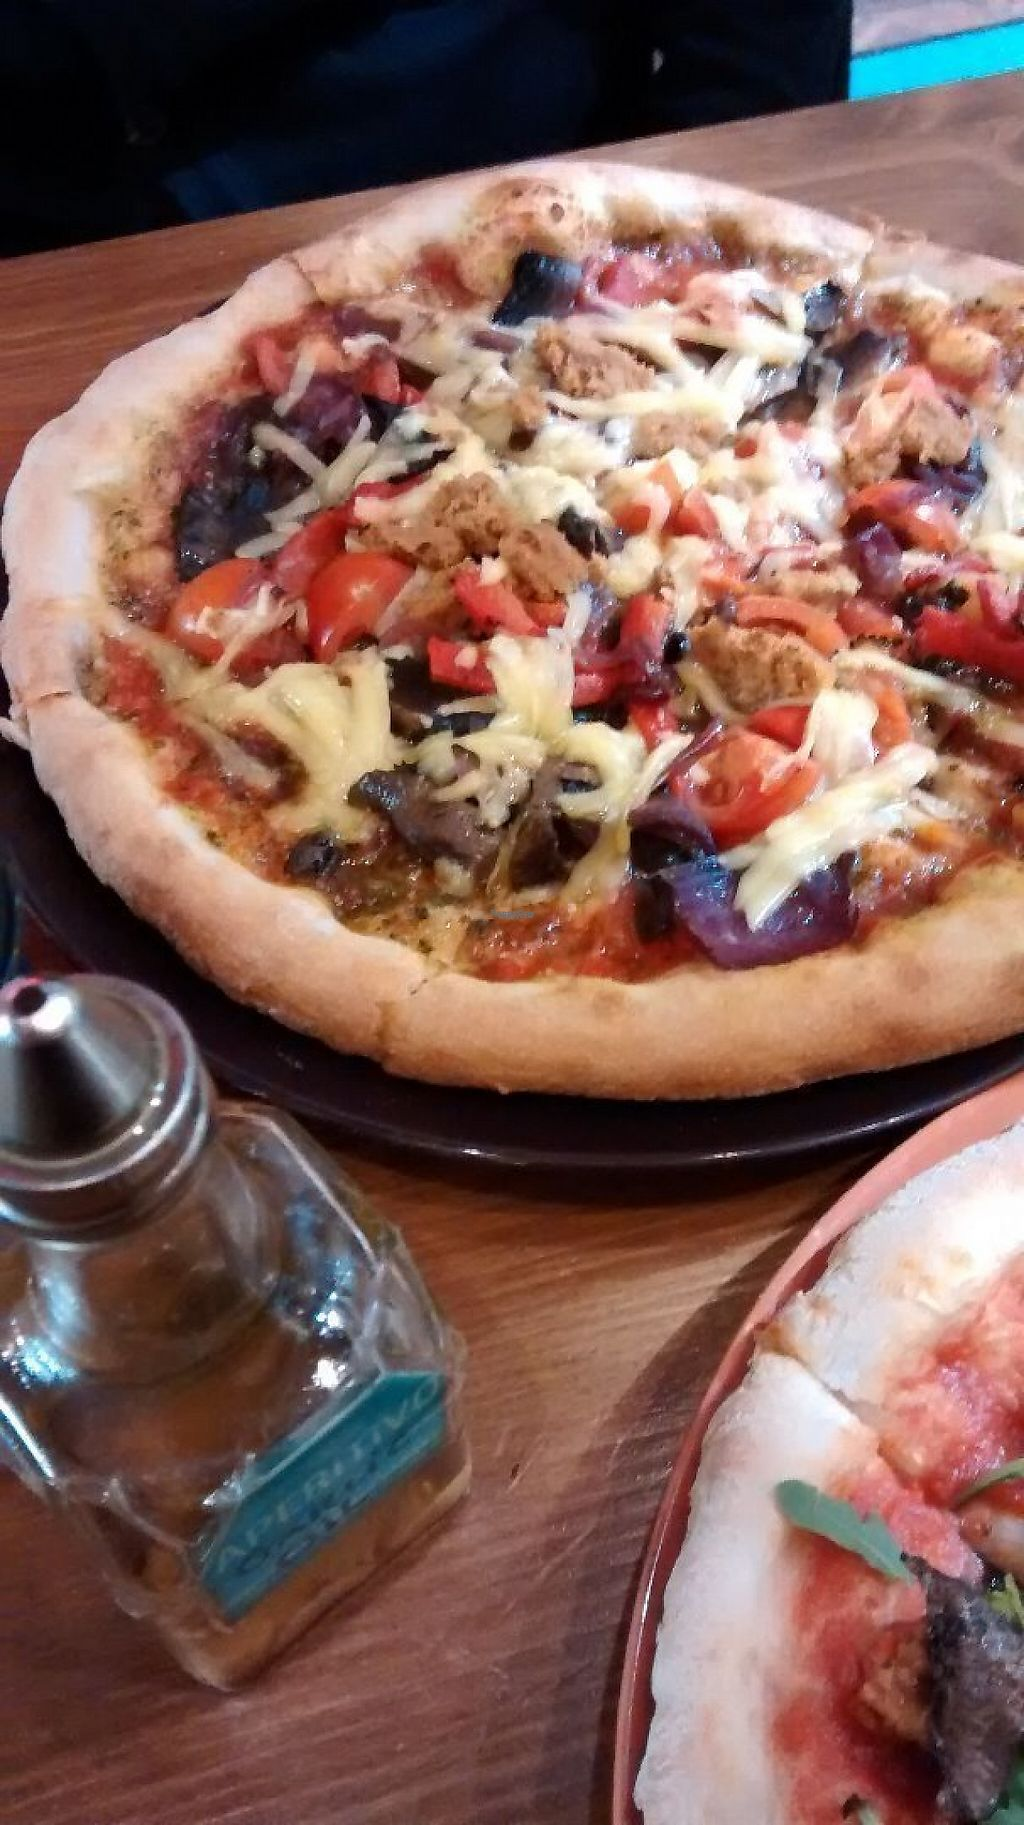 """Photo of Aperitivo  by <a href=""""/members/profile/BlisterBlue"""">BlisterBlue</a> <br/>Vegan pizza with extra sausage and cheese <br/> December 22, 2016  - <a href='/contact/abuse/image/84146/204104'>Report</a>"""